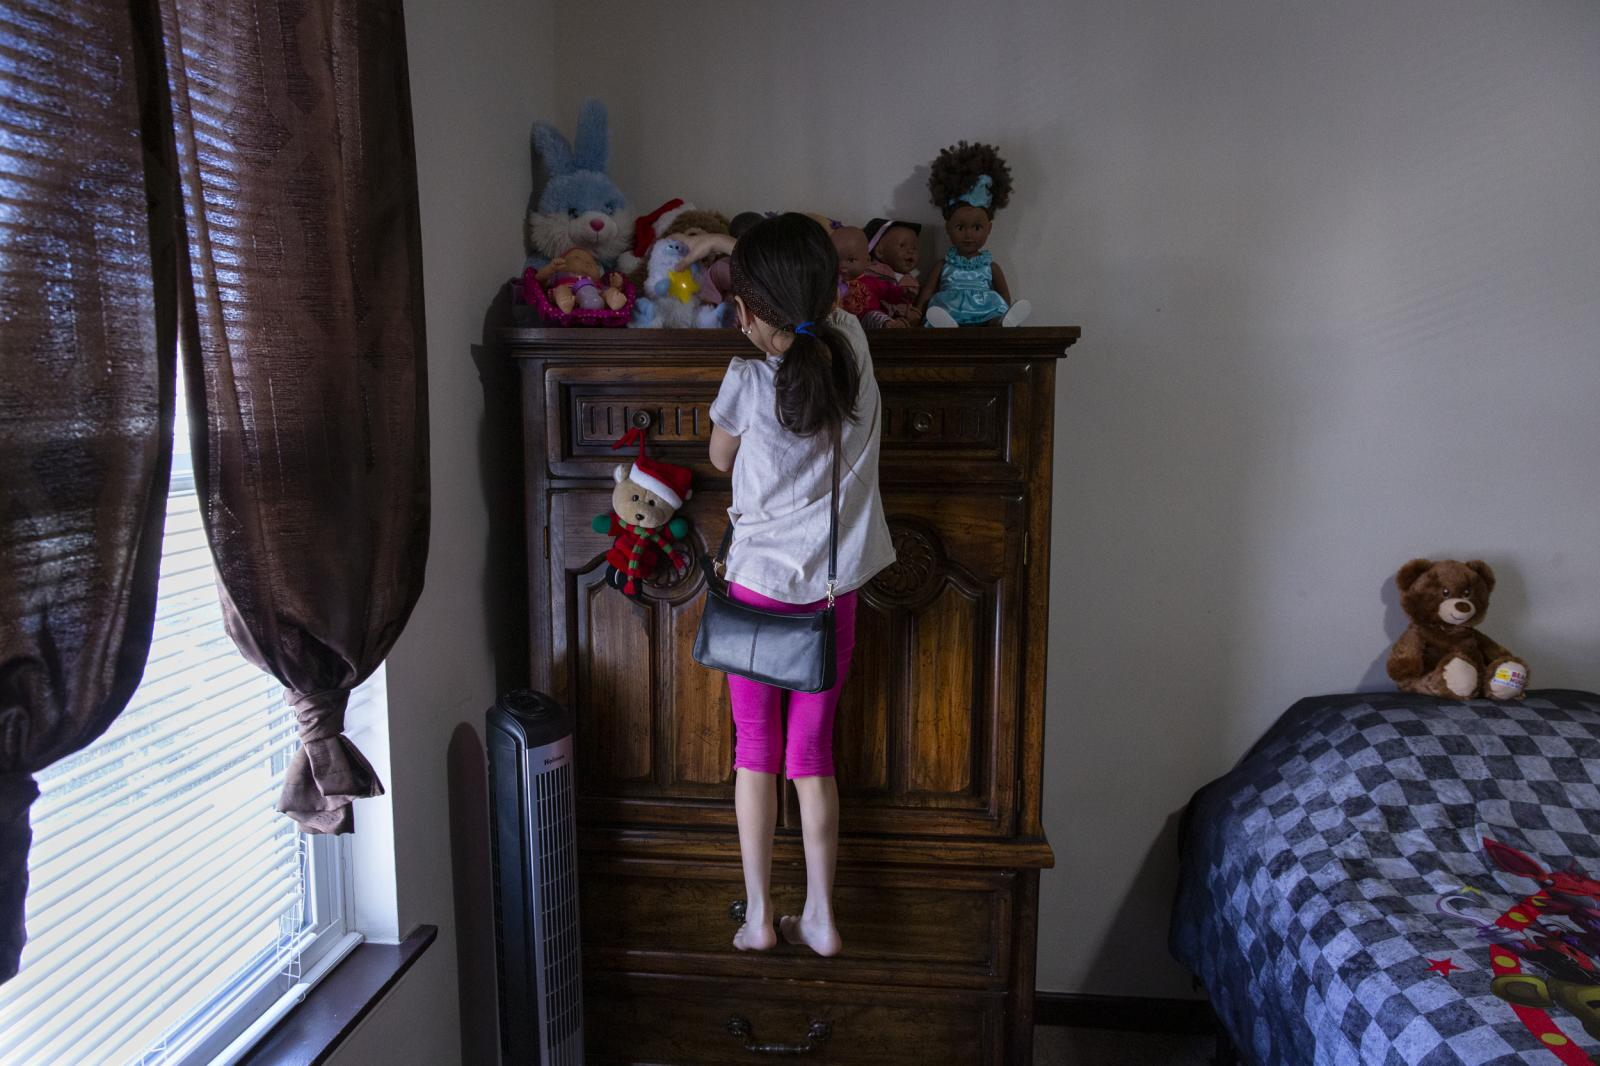 "Intisar Bakour, 8, reaches for her favorite doll in her room in Indianapolis, Indiana. Bakour's grandparents arrived in the United States as Syrian refugees and started living with her and other family members in the same house after years of waiting because of president Donald Trump's ban on travel from predominantly Muslim countries. Bakour said she felt nervous meeting with her grandparents at the airport for the first time since she was four, and she didn't recognize them at first. ""And then my mom told me that was her mom and dad, and then I knew they are my real grandparents."""